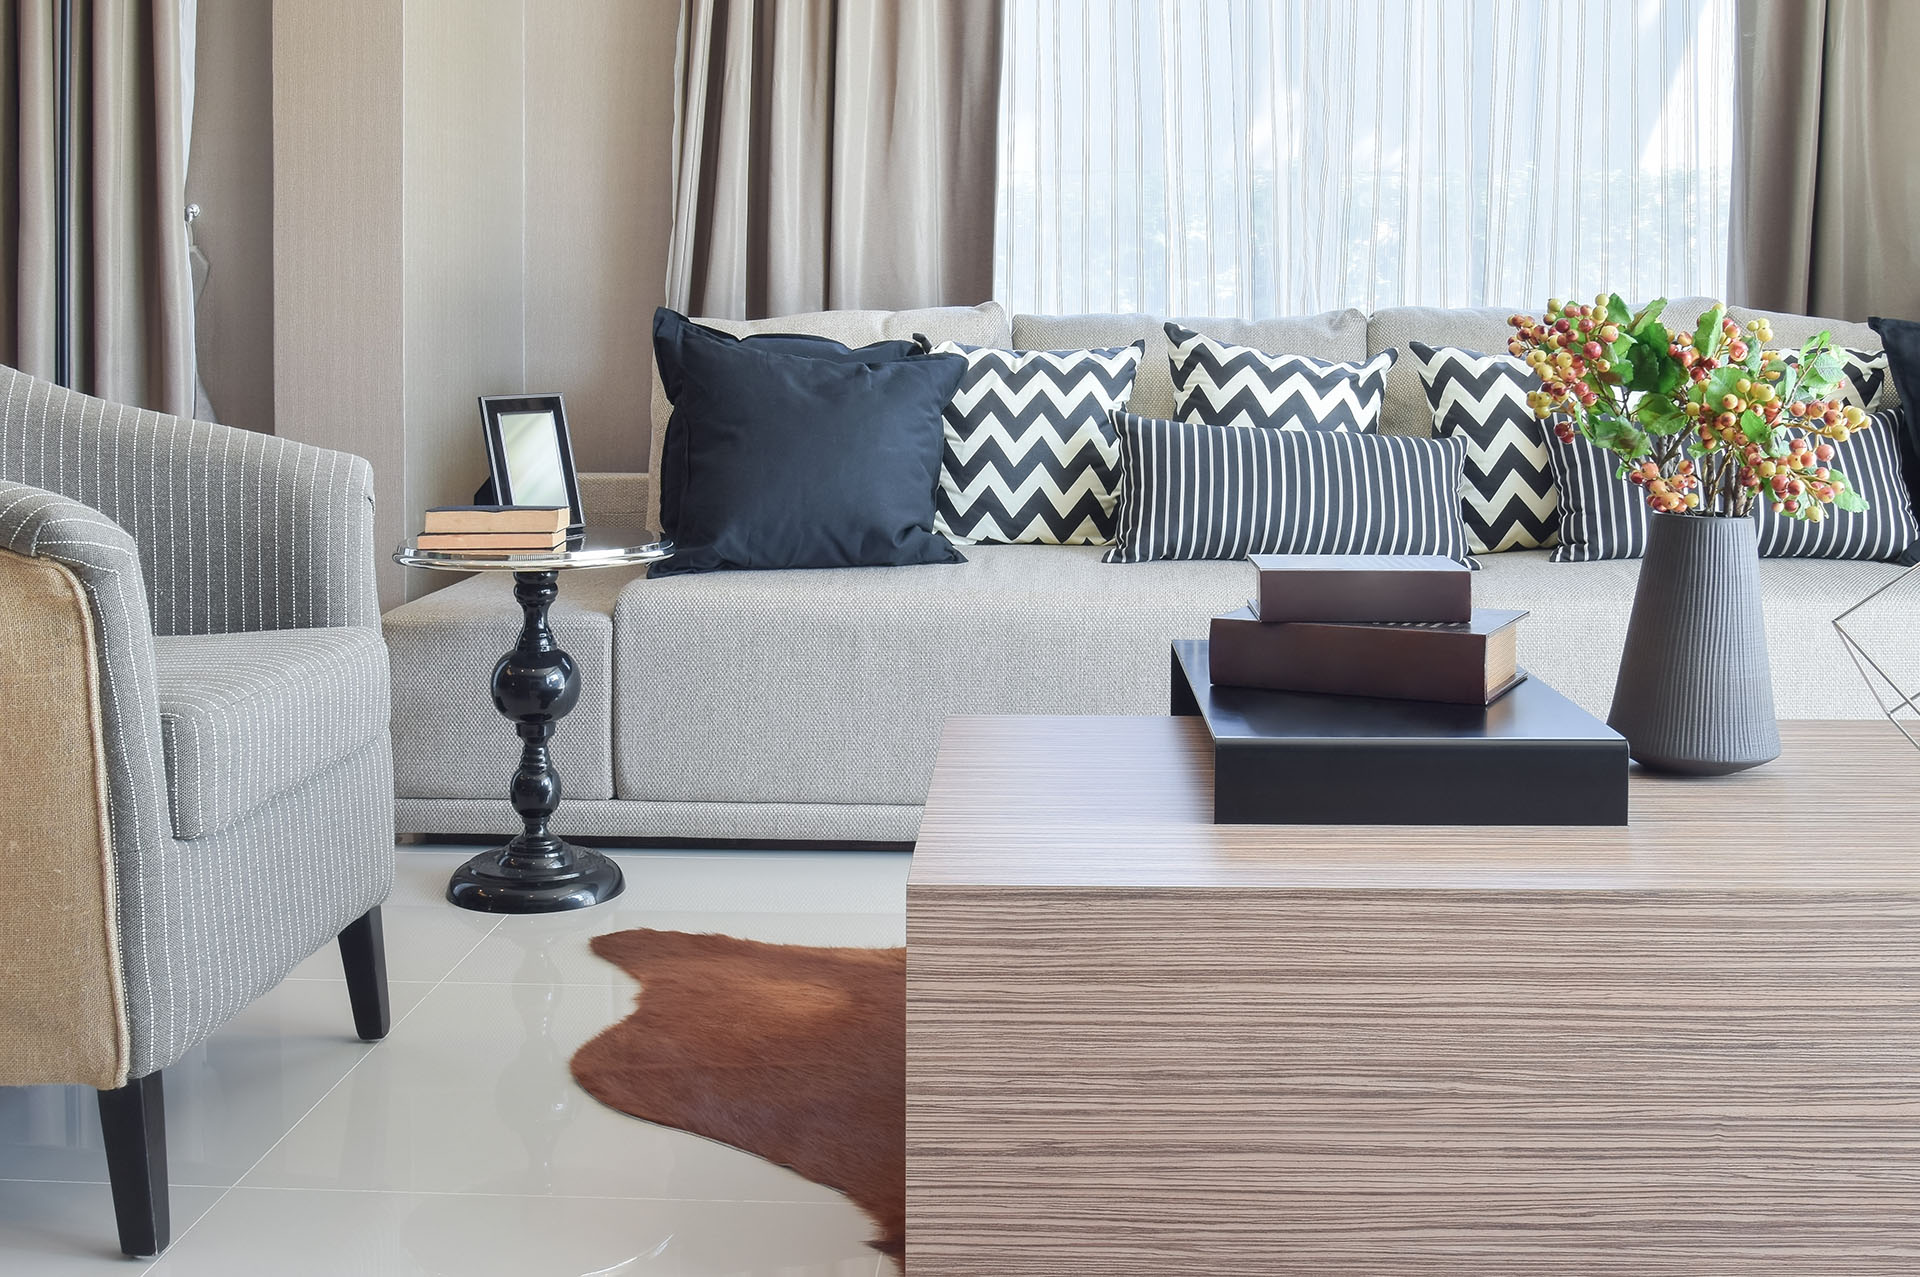 Image result for Carpet & Upholstery Cleaning